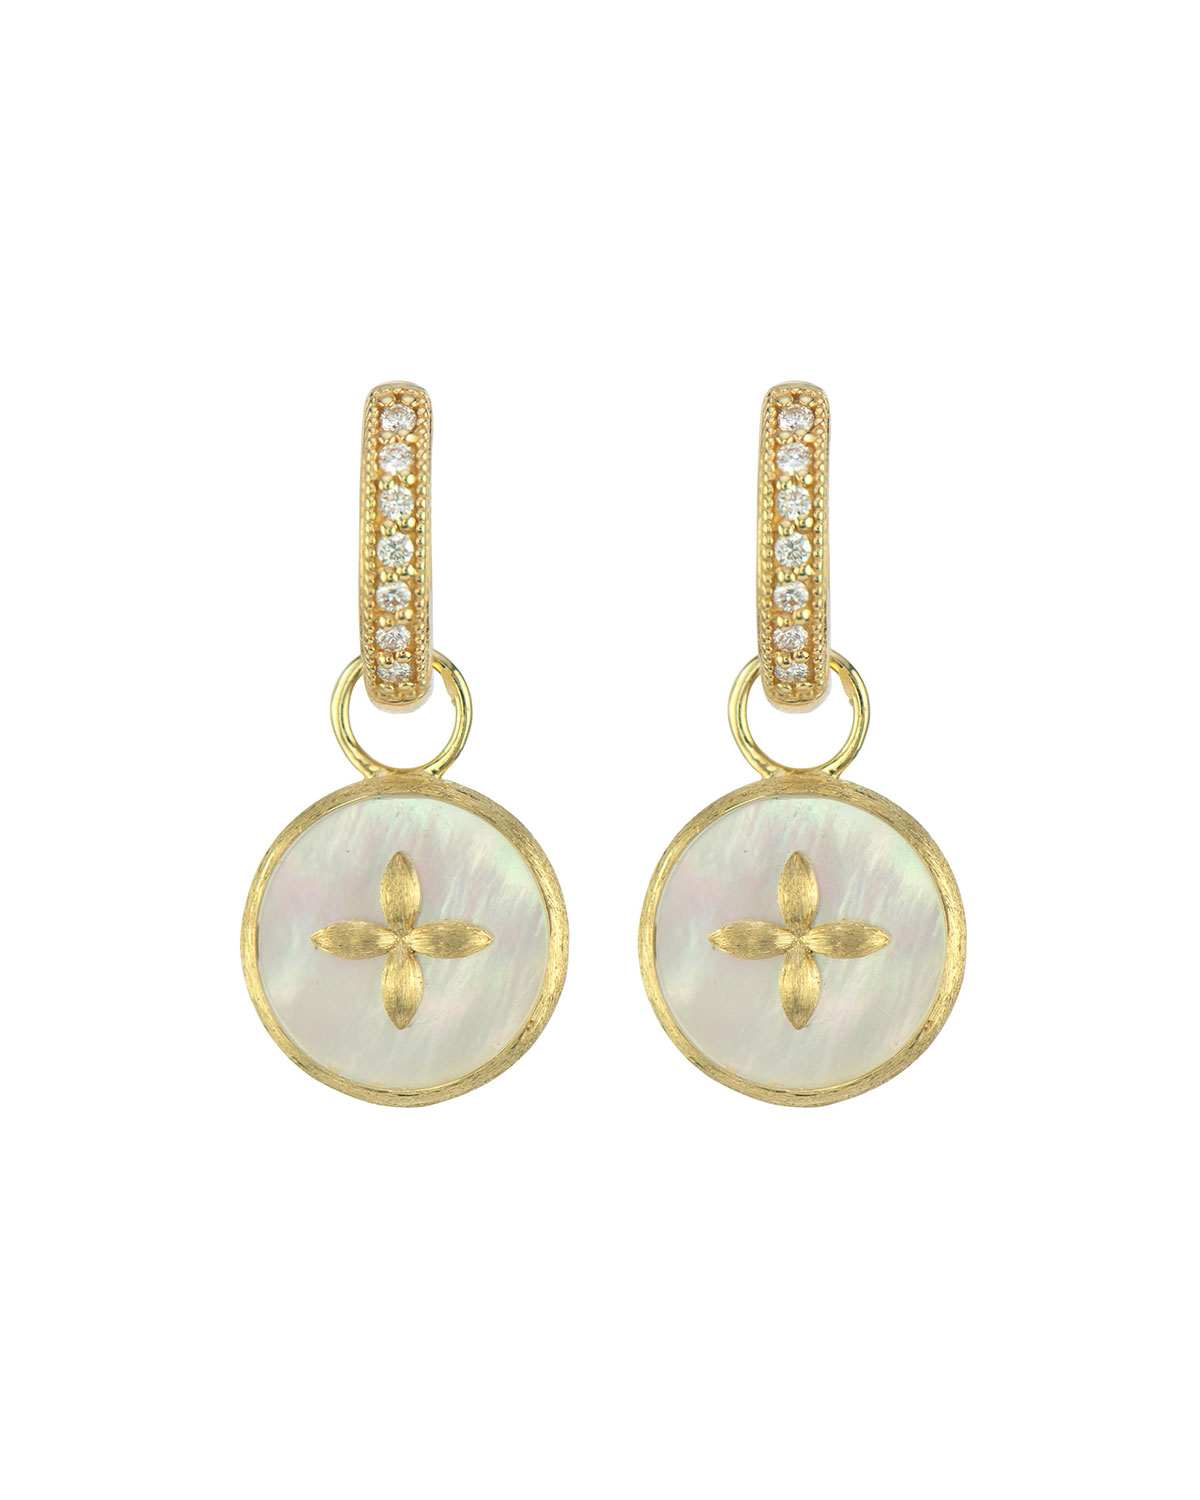 Moroccan Cross and Mother-of-Pearl Earring Charms